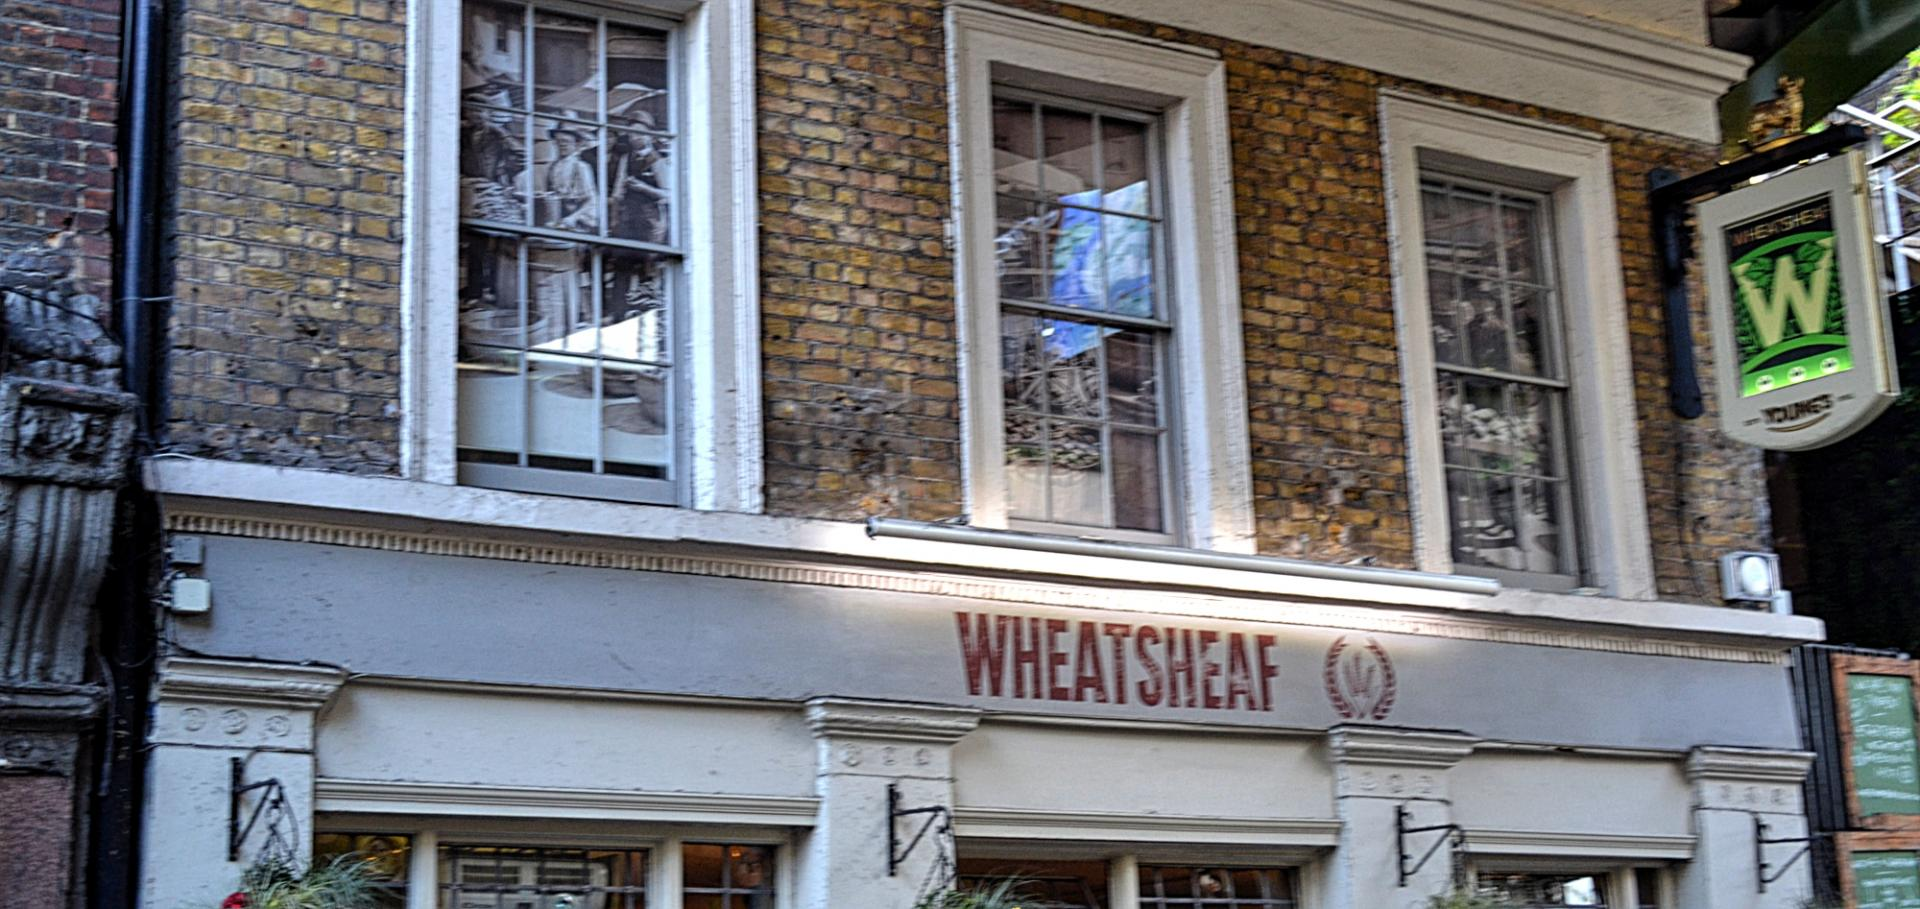 Pub Wheatsheaf en el Borough Market